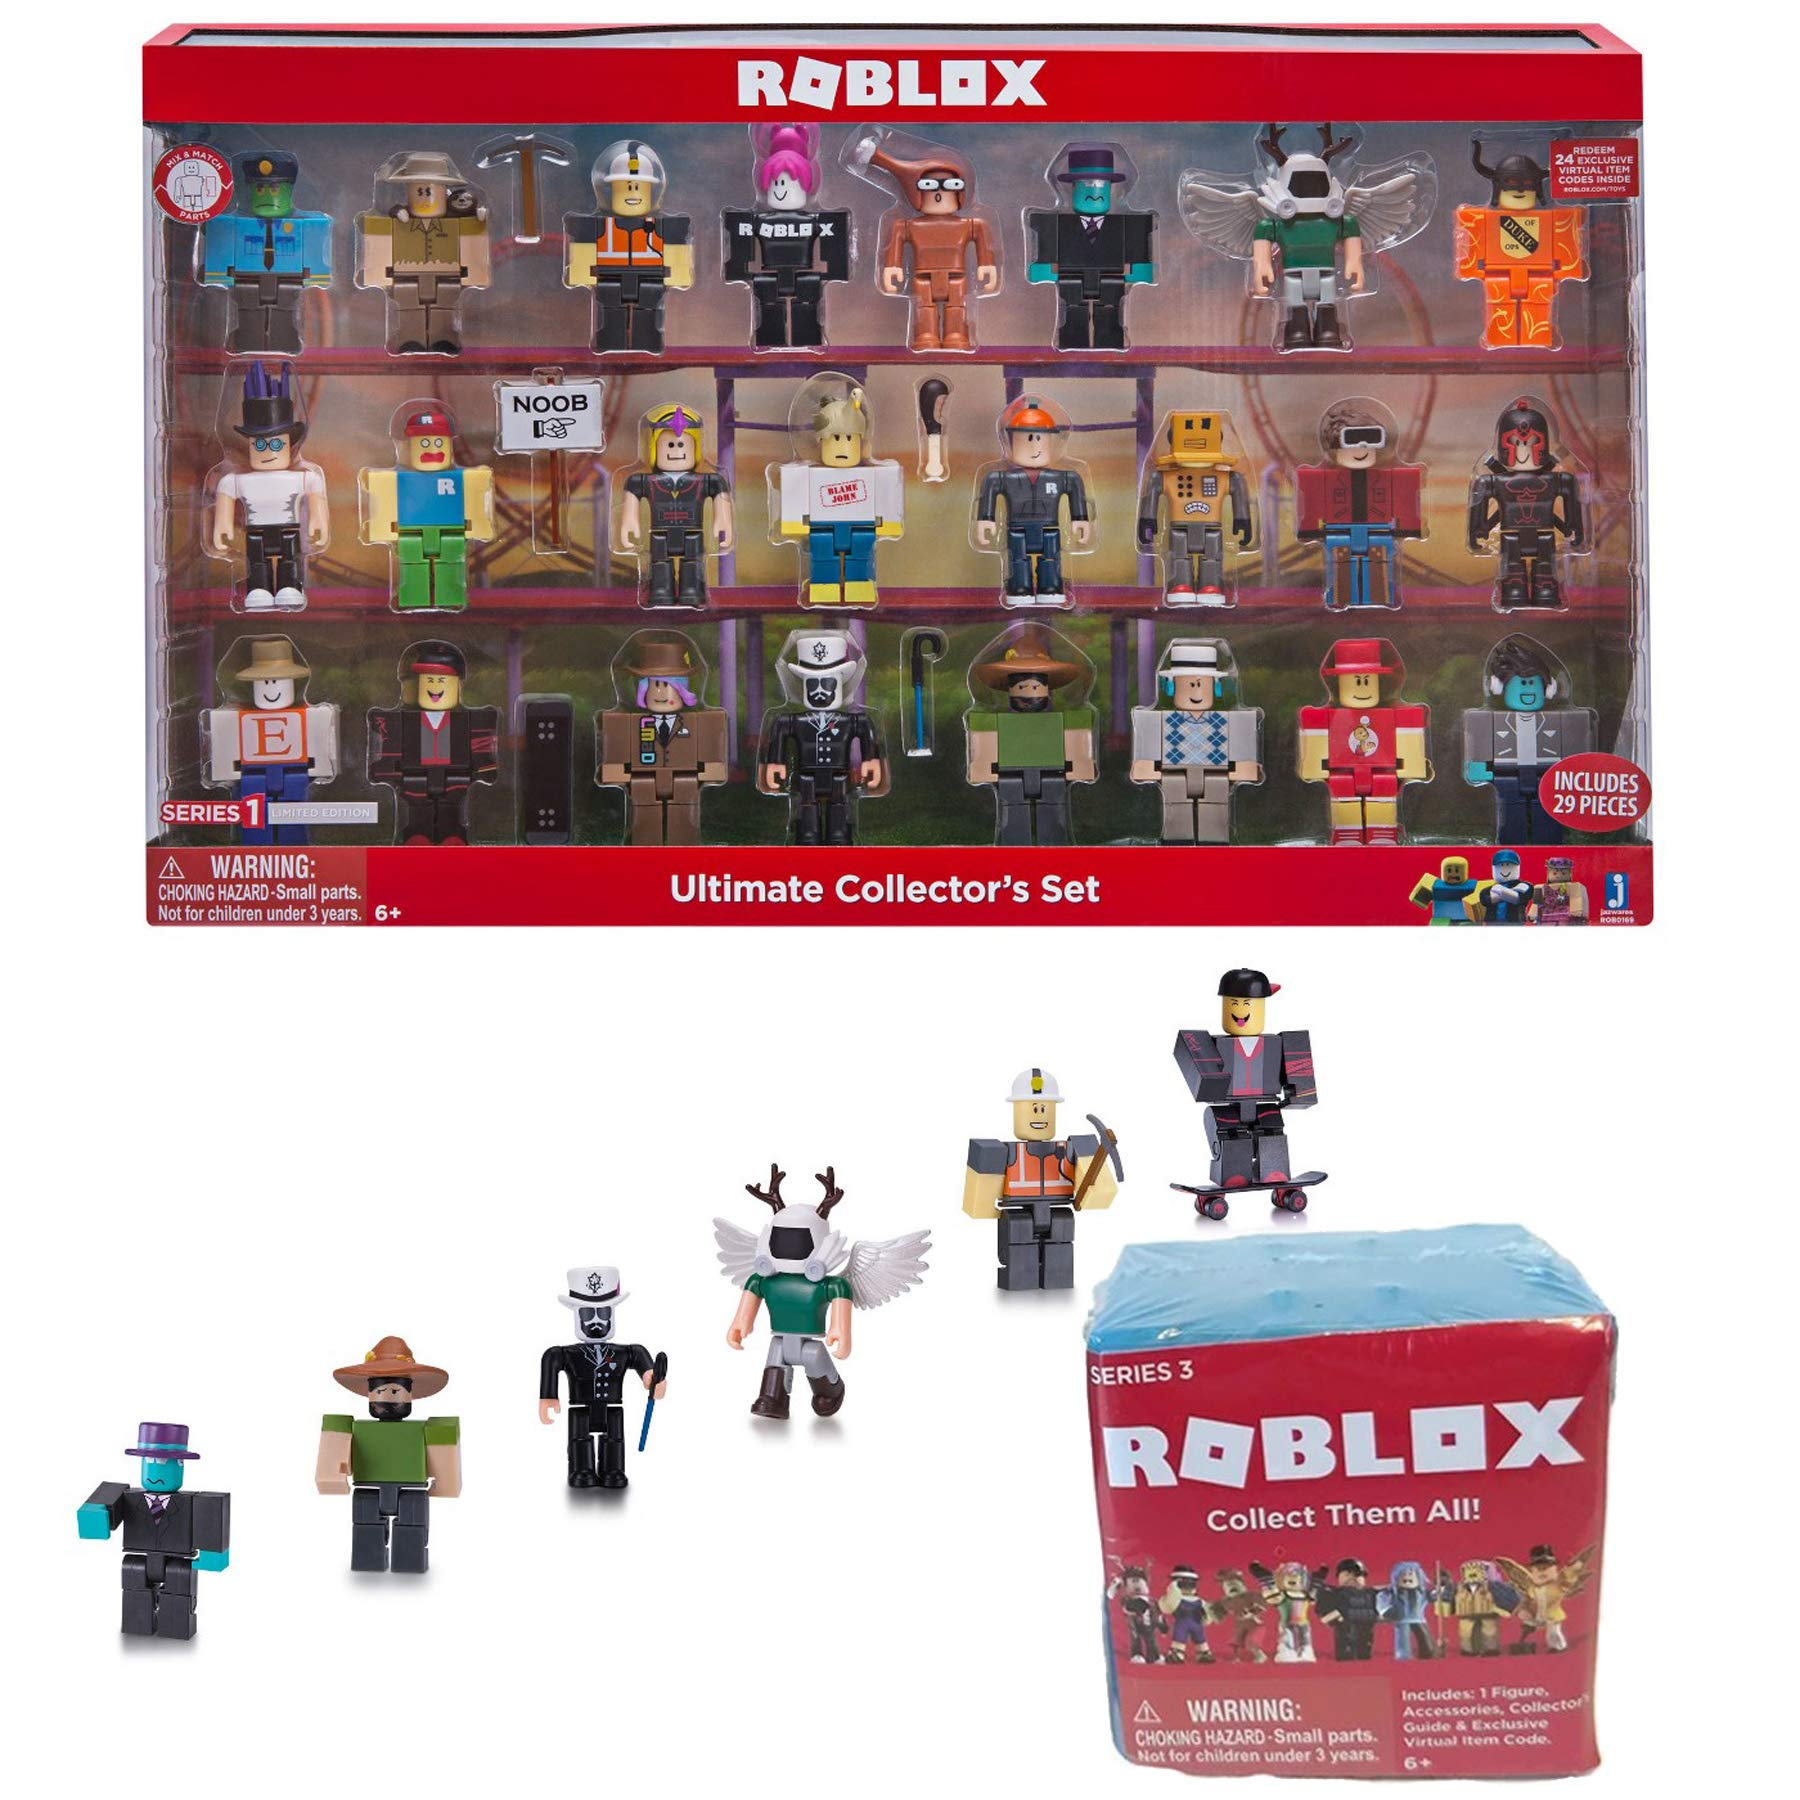 Roblox Celebrity Series Target Exclusive 12pk Figurines Roblox 24 Ultimate Roblox Collection Bundled Wi Buy Online In Guernsey At Desertcart